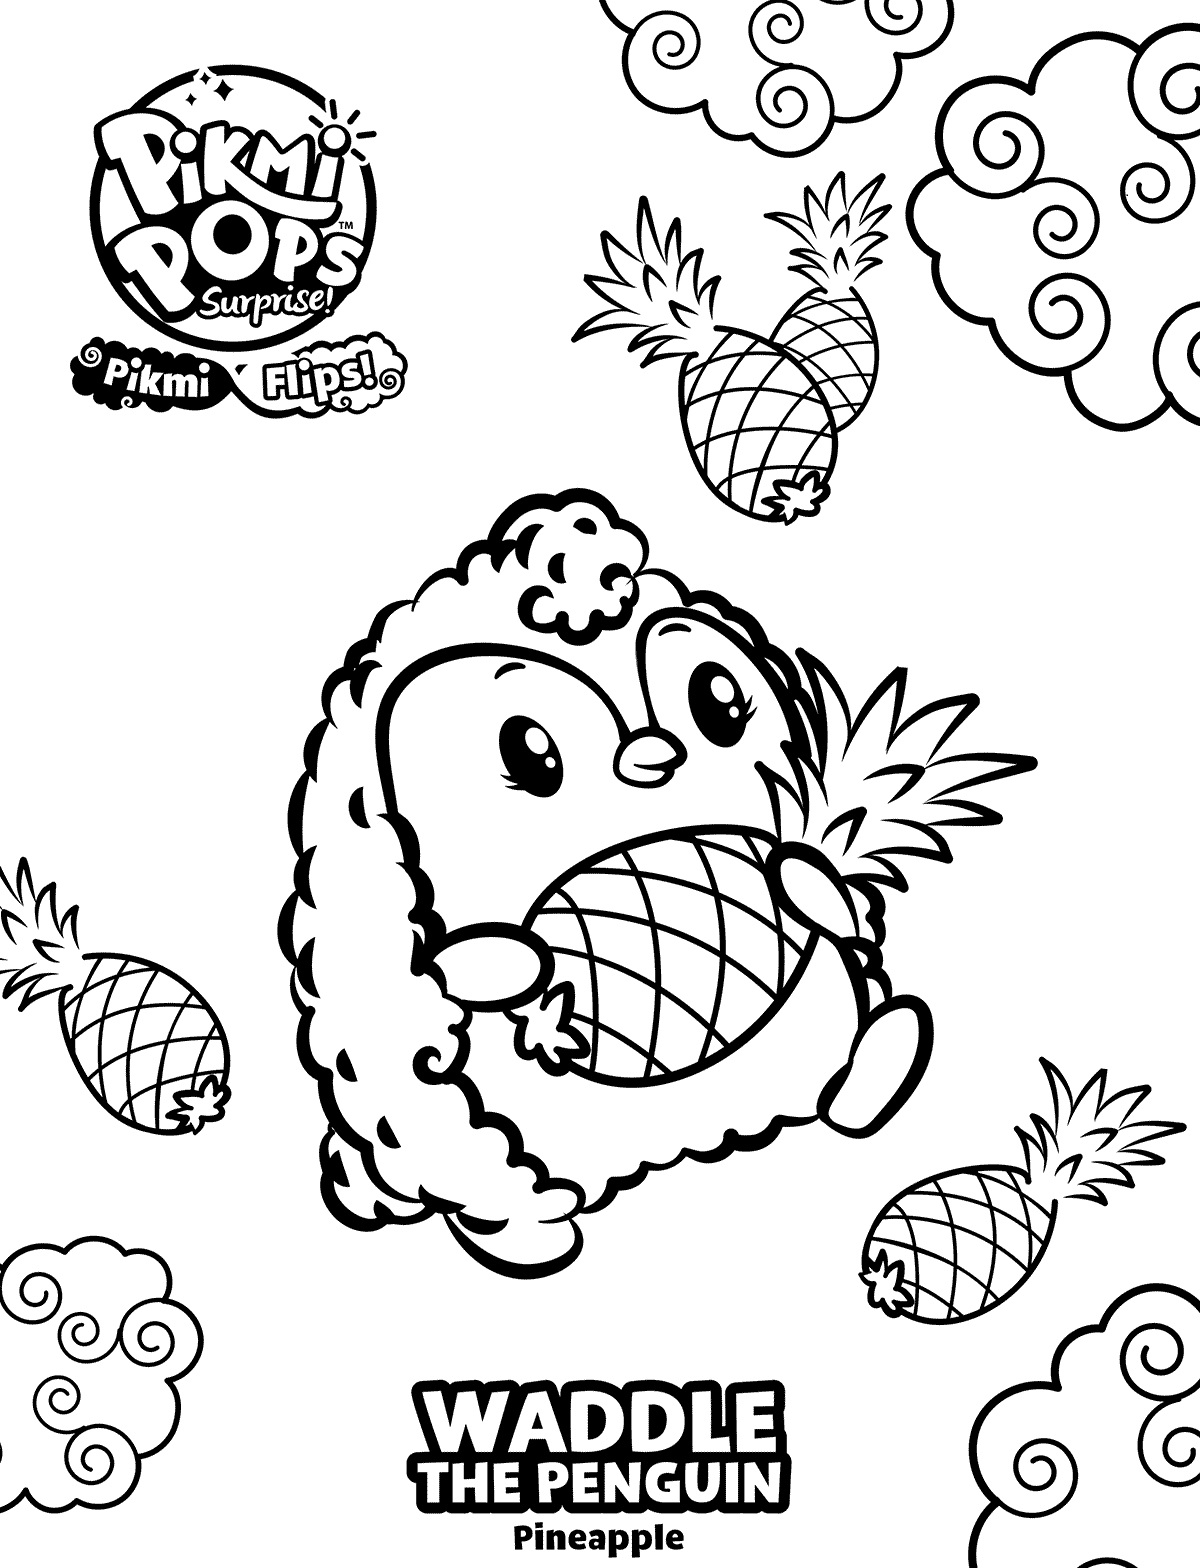 Waddle Pikmi Pops Coloring Pages